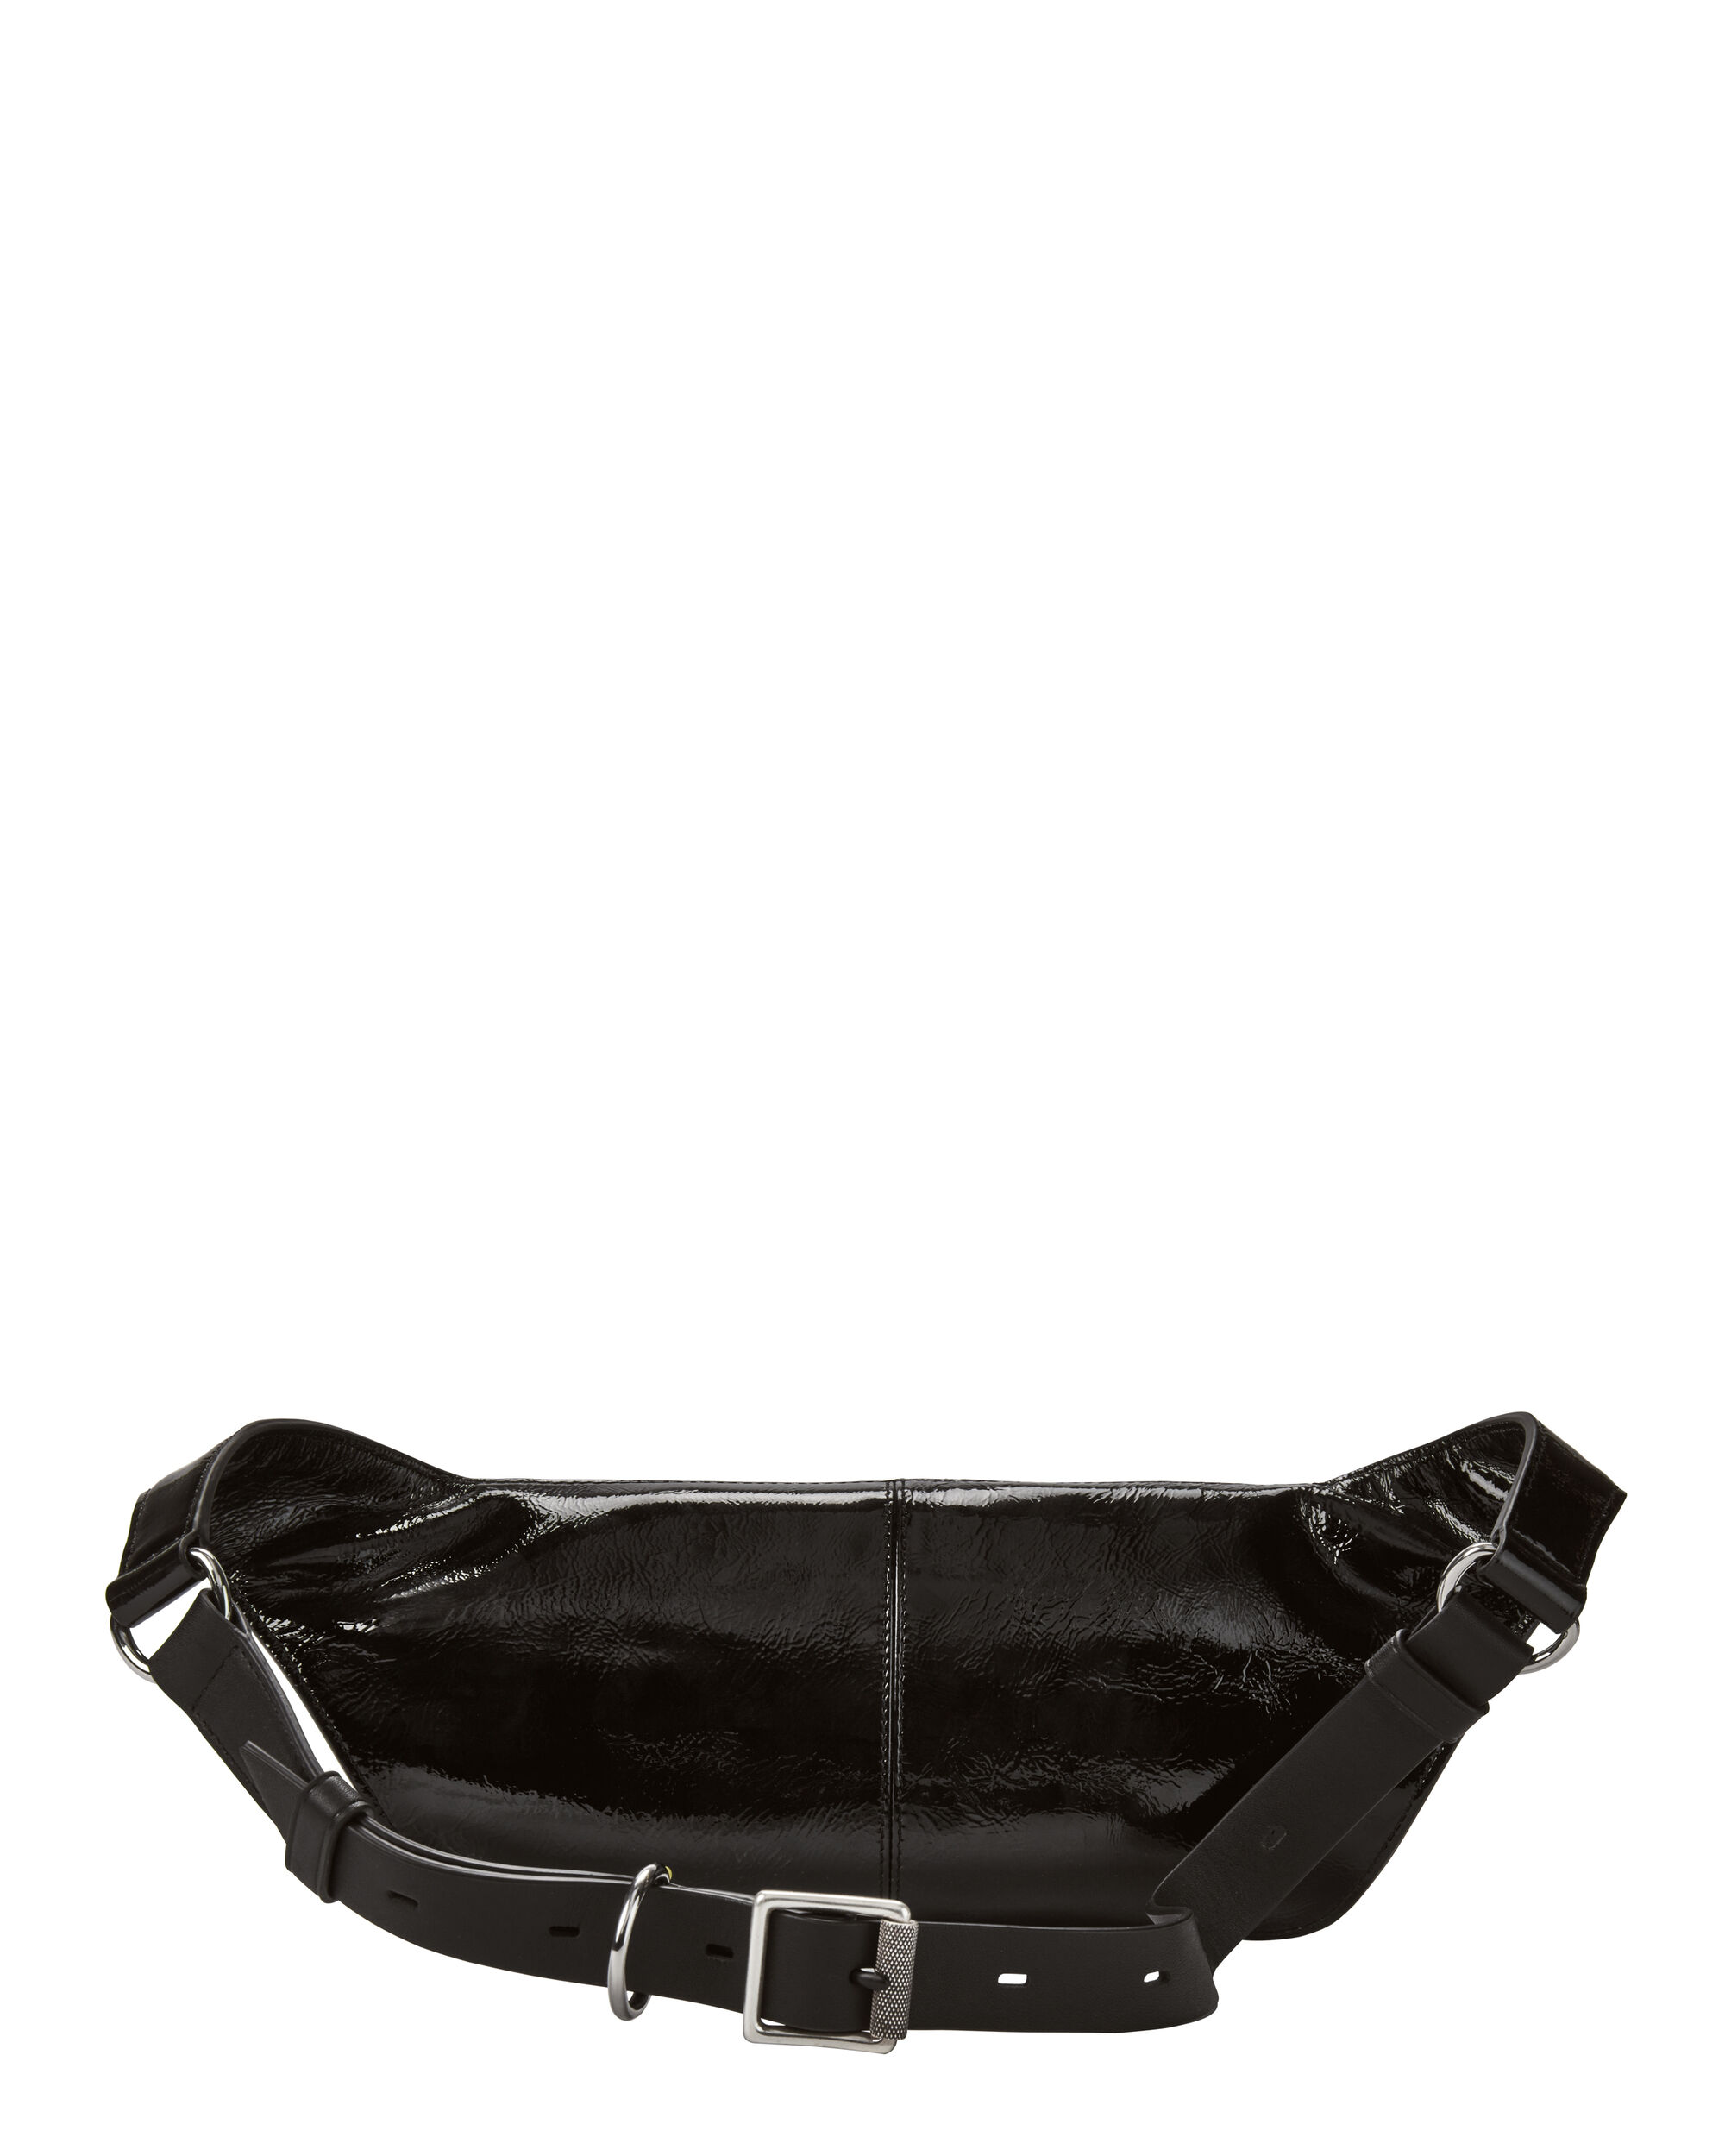 Small Patent Leather Fanny Pack, BLACK, hi-res